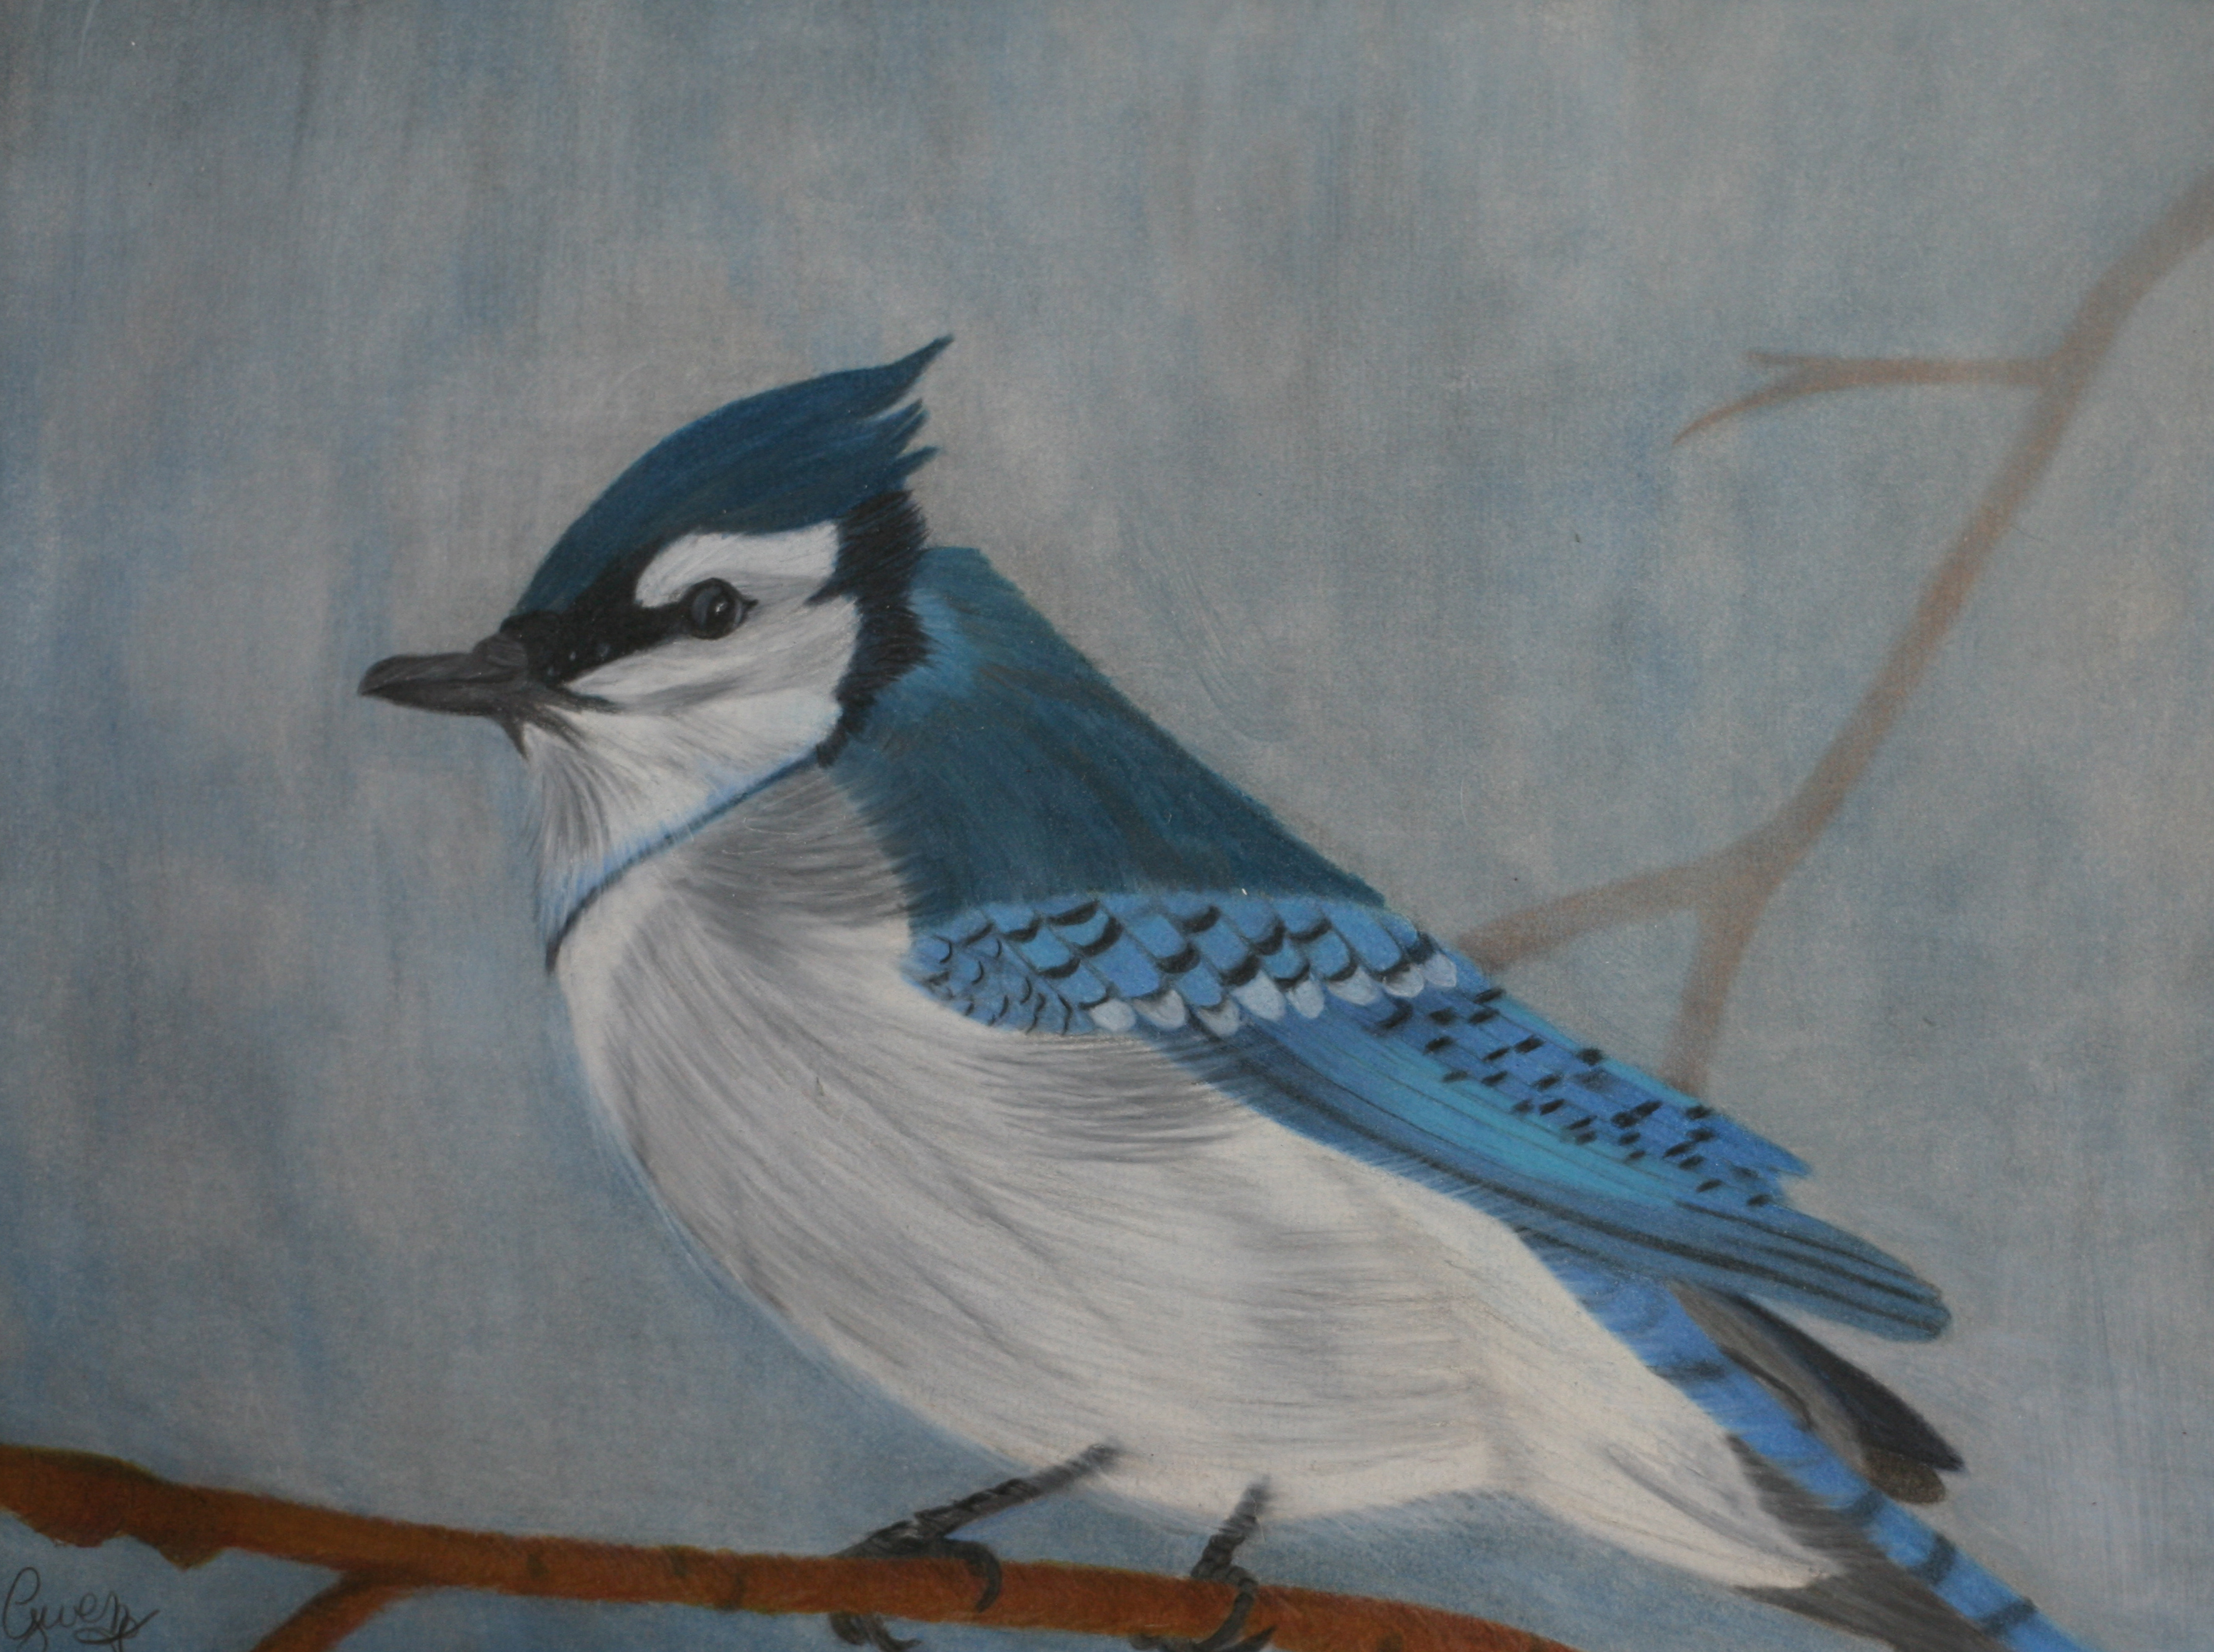 Blue jay on limb in colored pencil with gray background